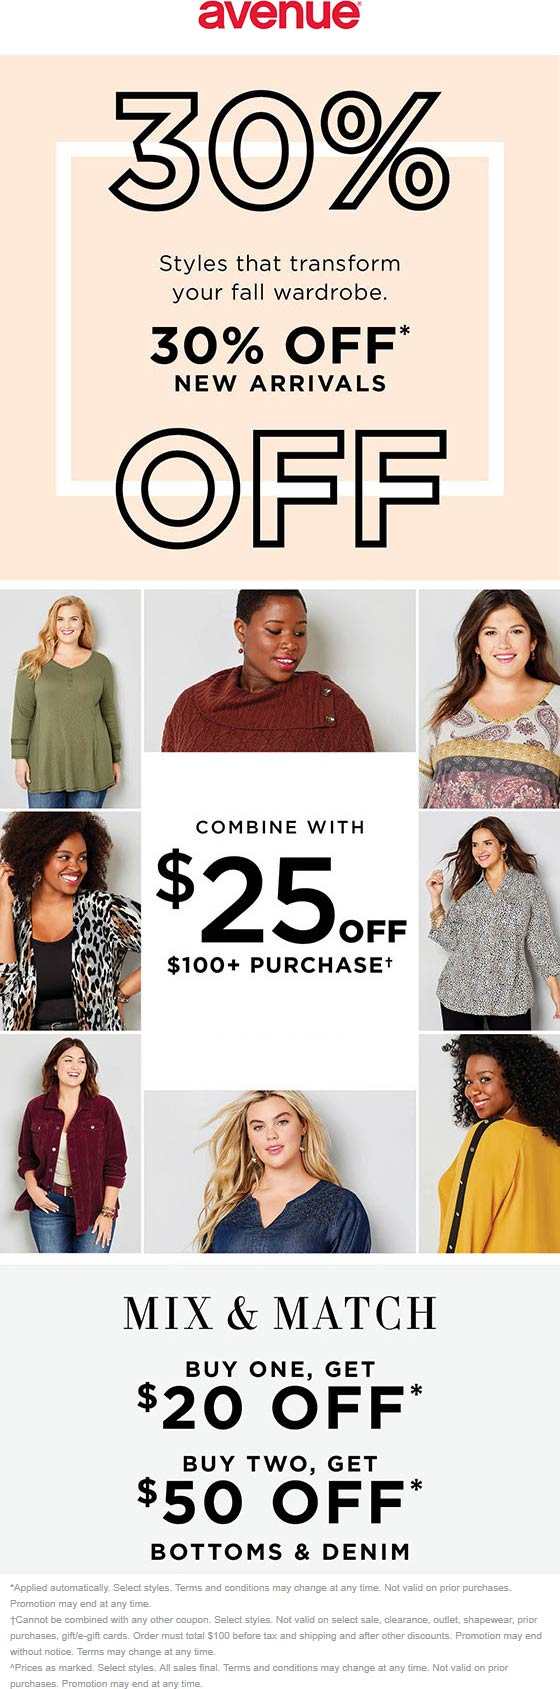 Avenue coupons & promo code for [February 2021]